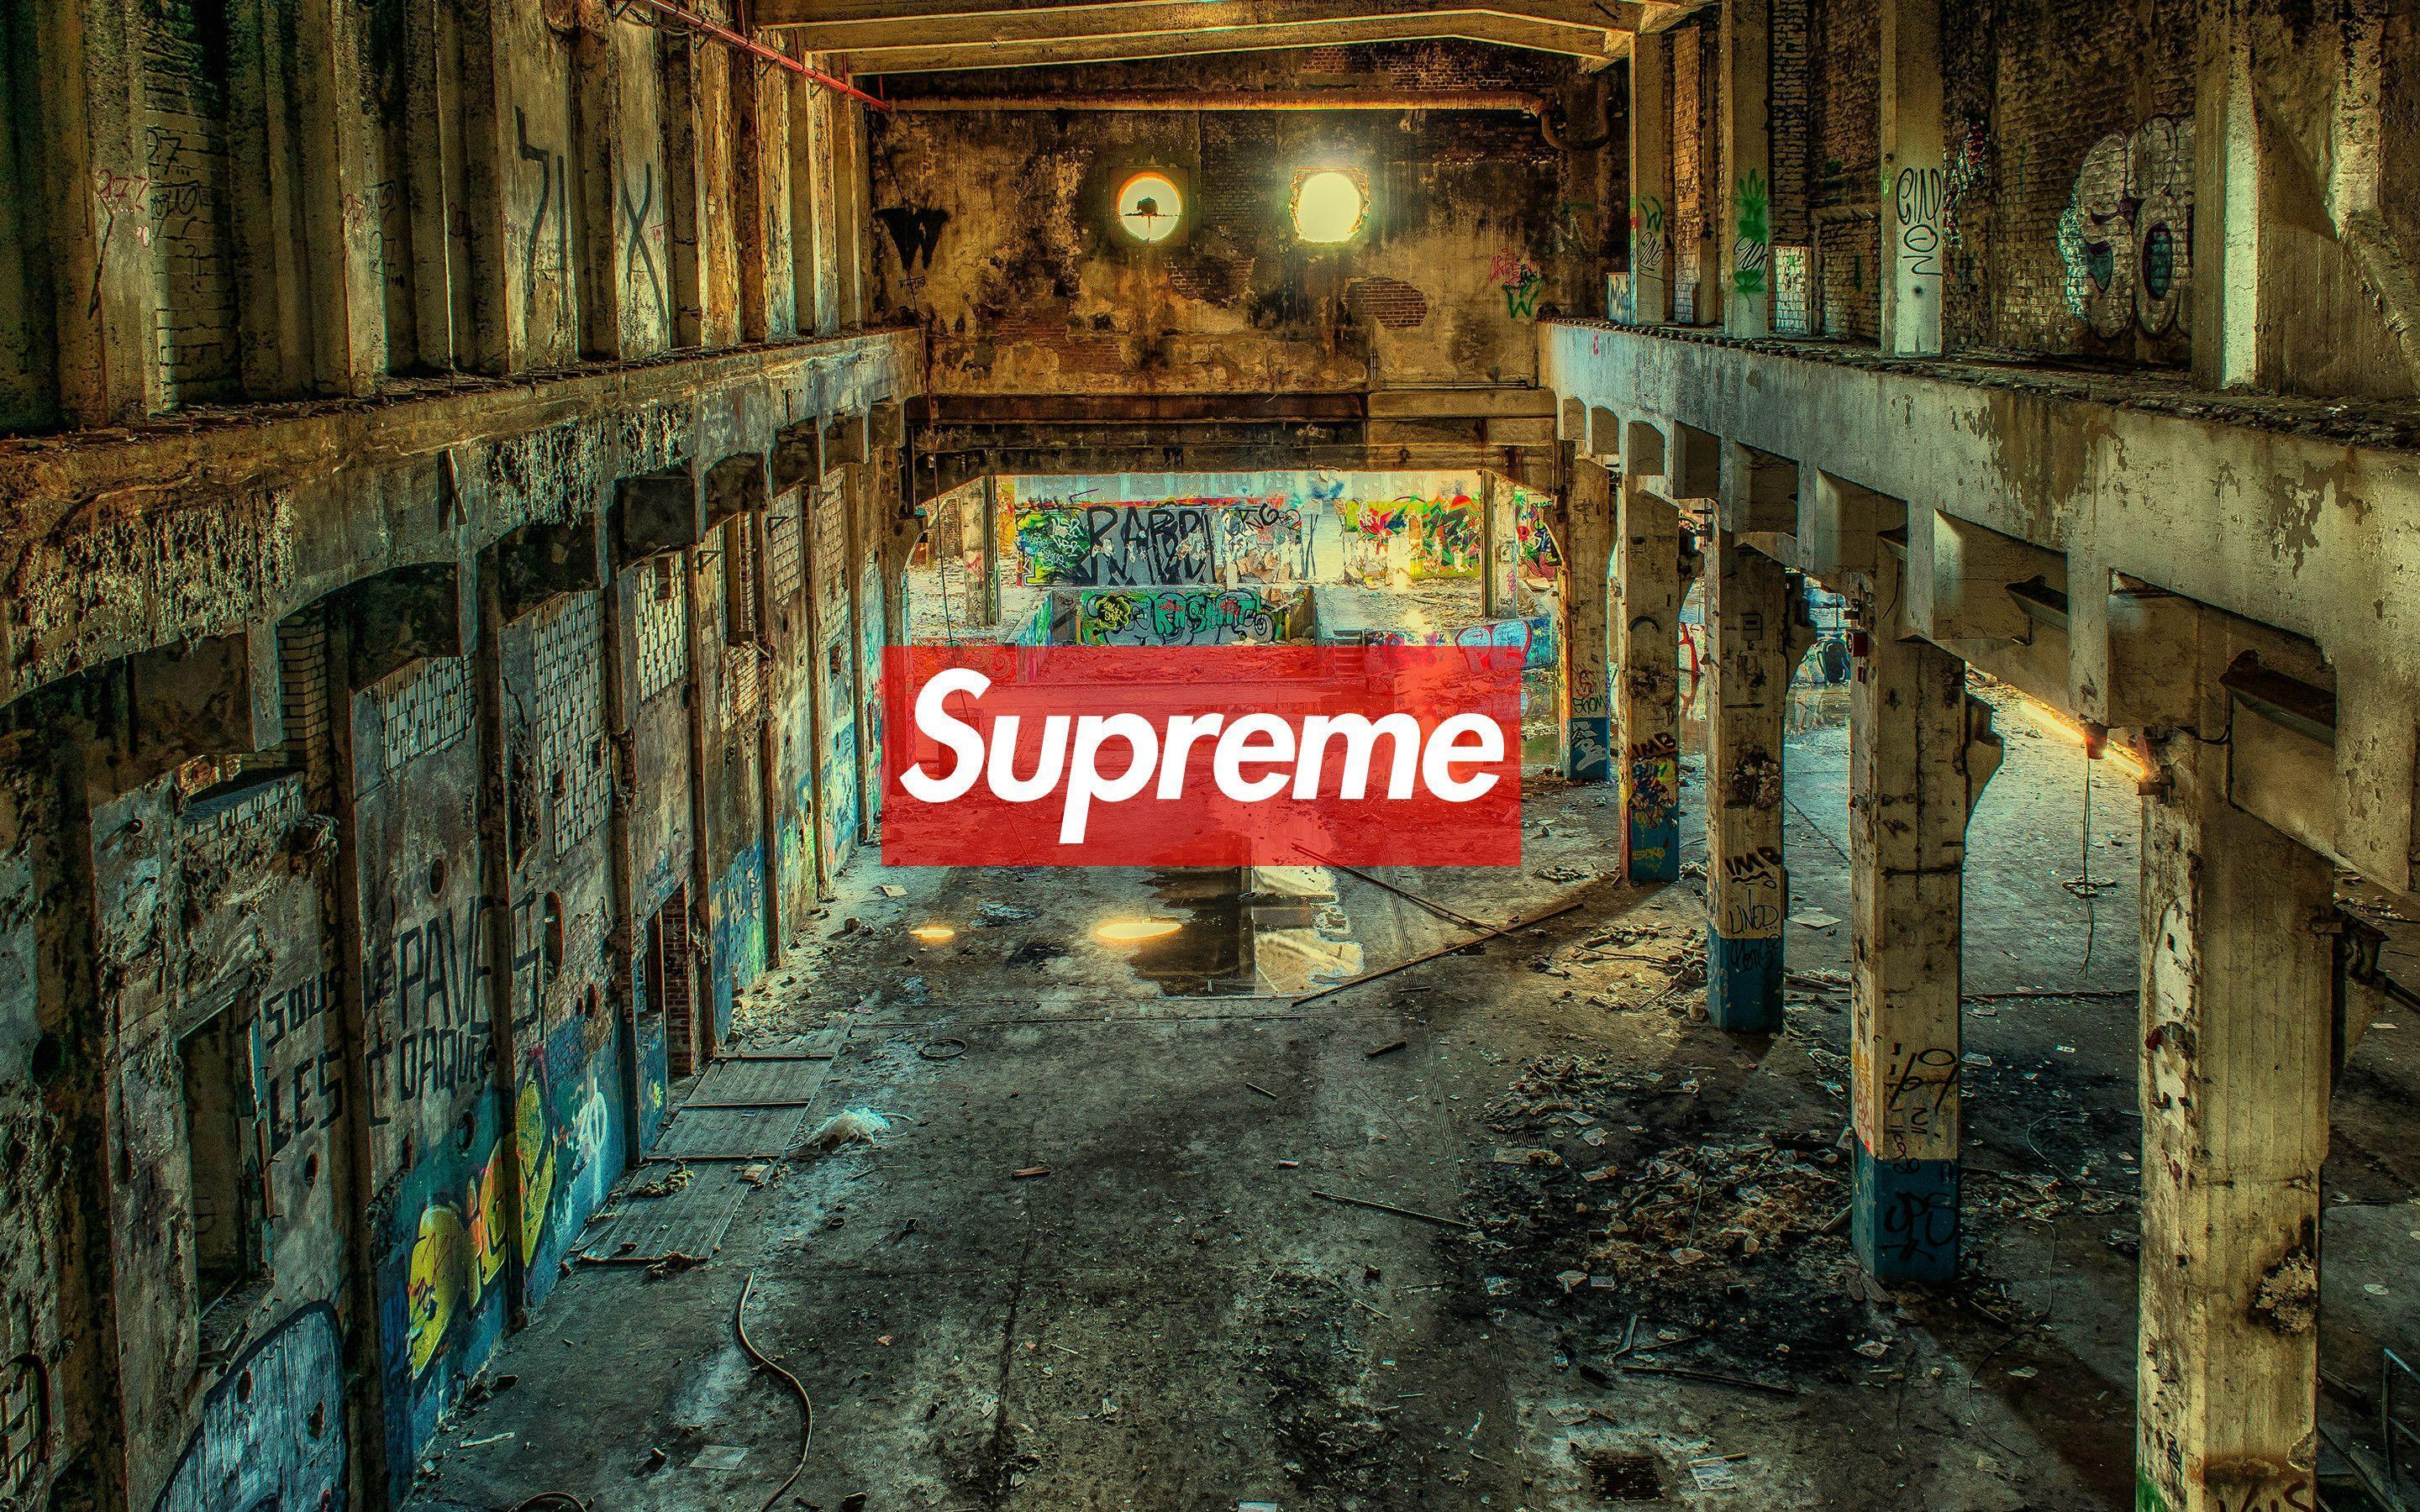 Supreme Wallpapers   Wallpaper Cave Supreme Wallpapers   Album on Imgur